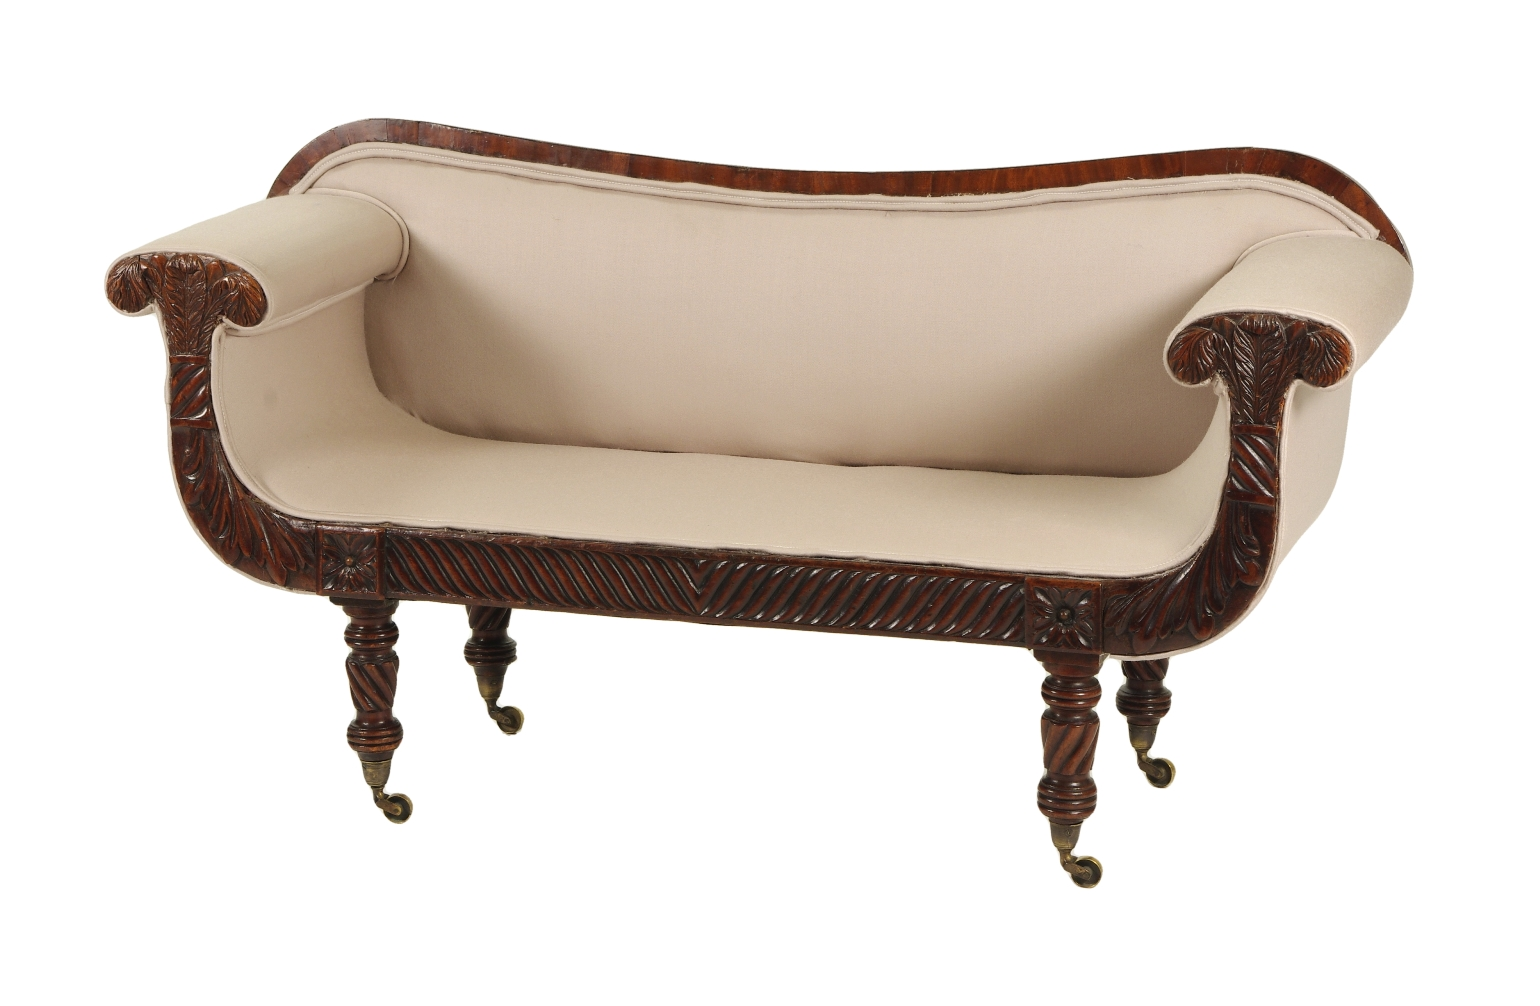 Regency Mahogany Child's Sofa, c. 1820